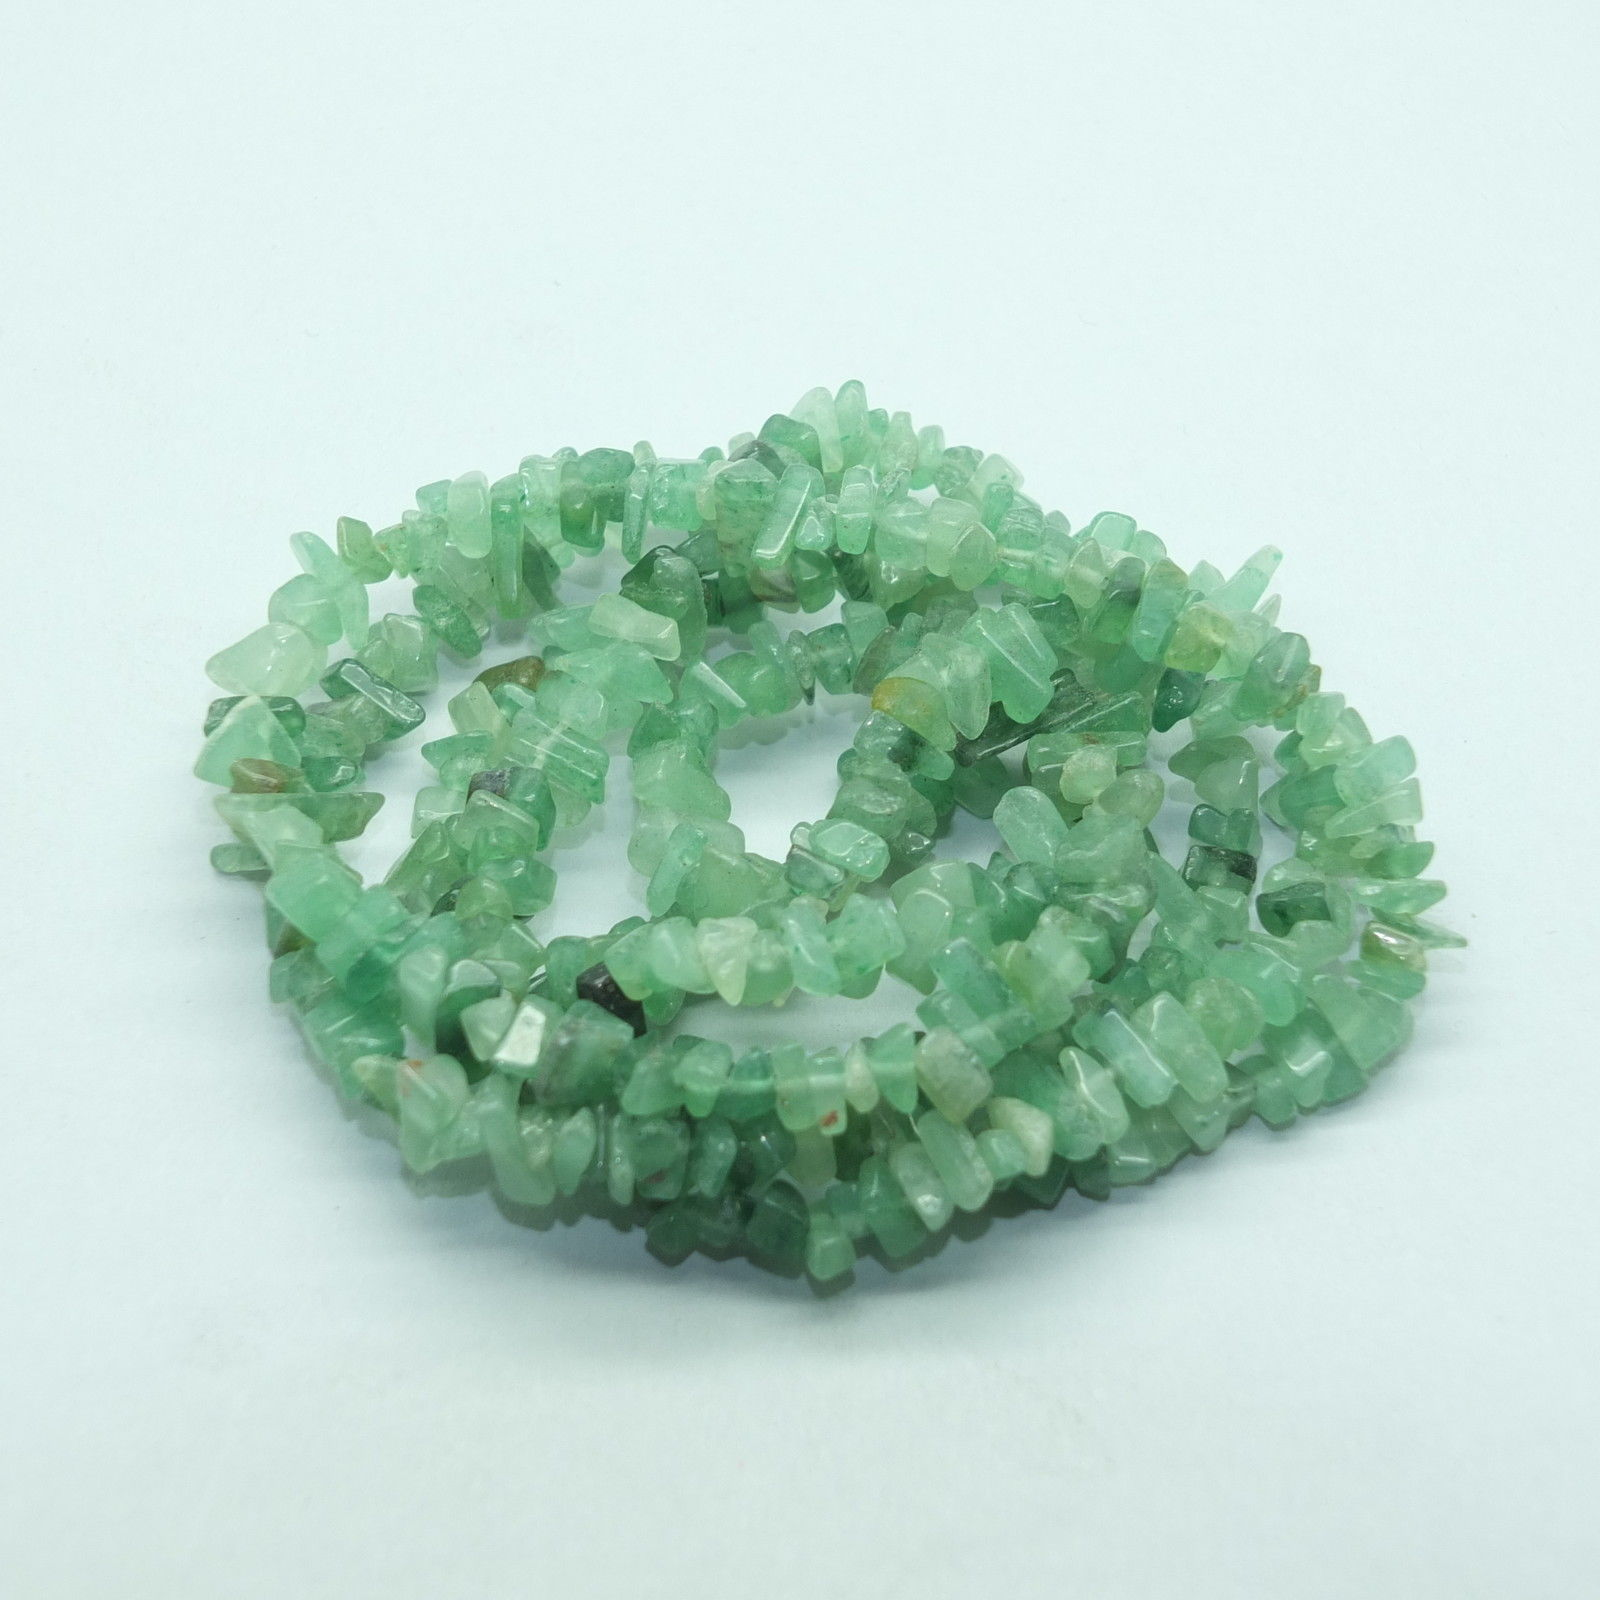 Primary image for Aventurine Chips Semi Precious Stone Gem Beads